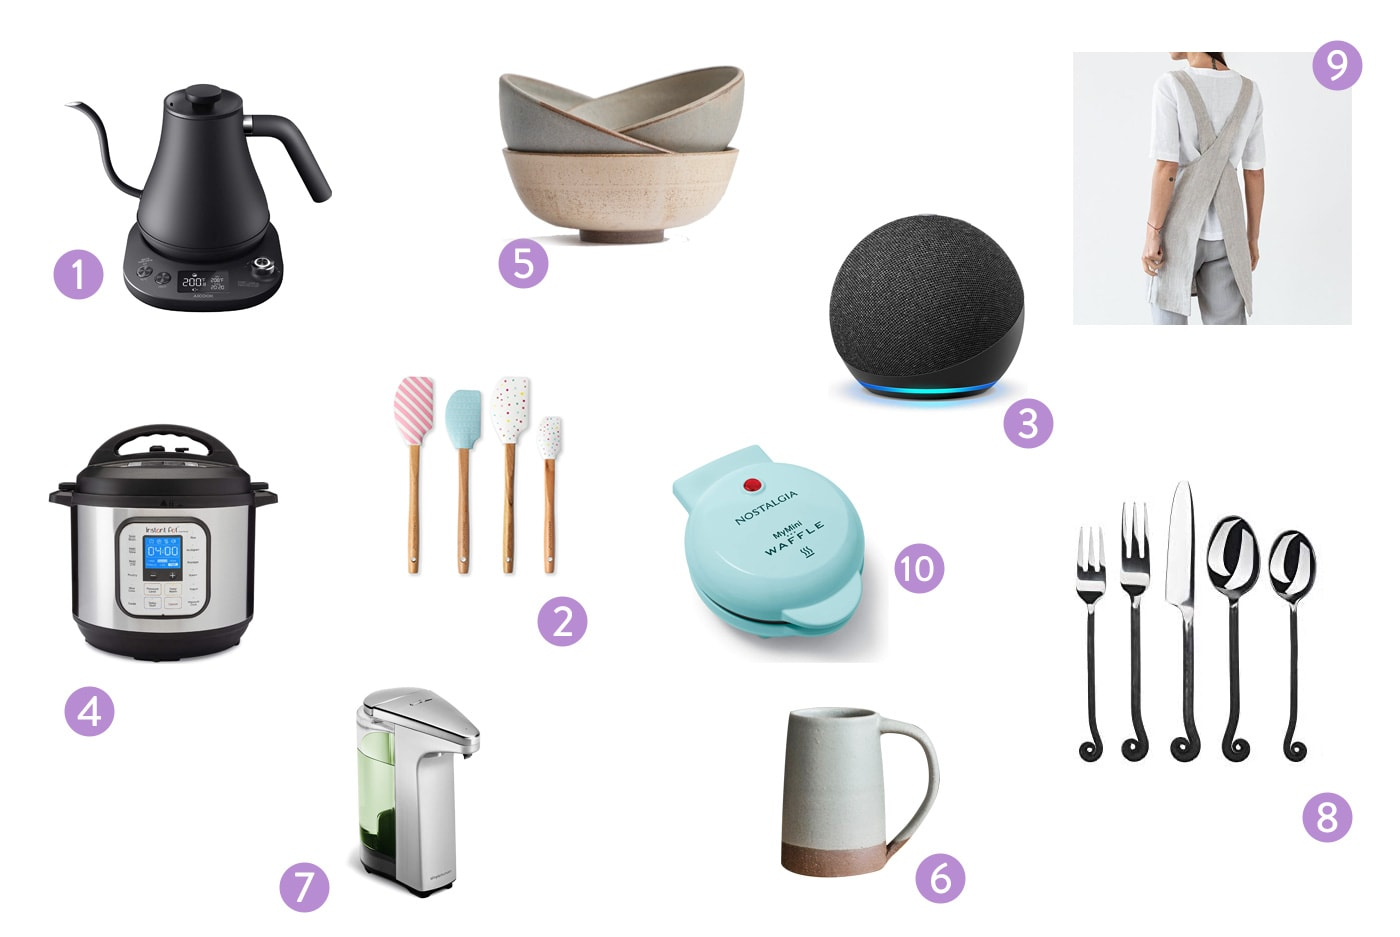 Holiday Gift Guide 2020 - Kitchen Tools